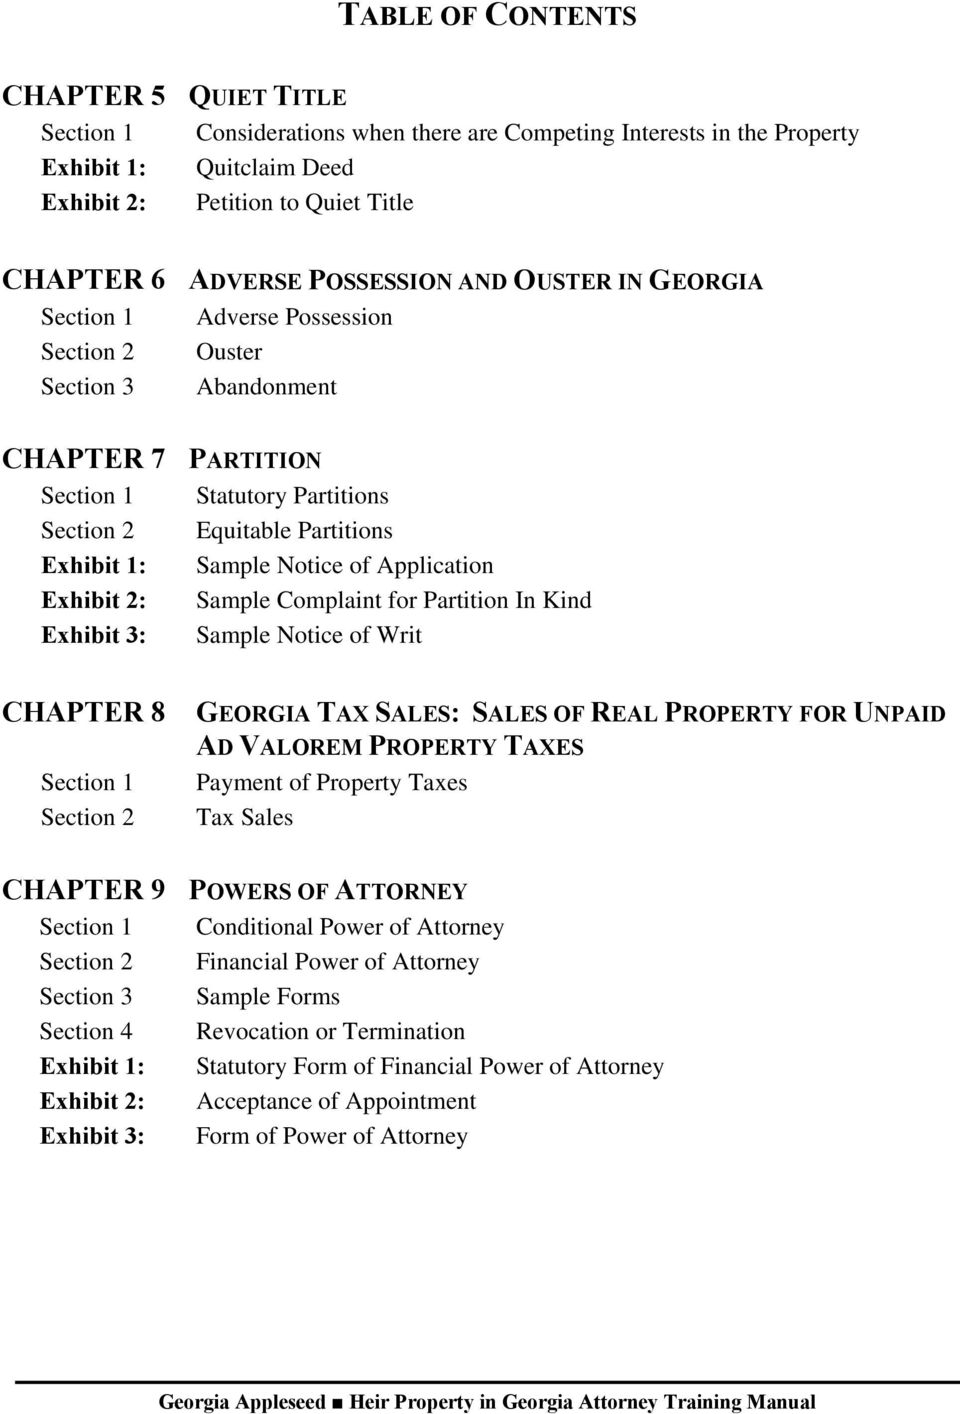 Sample Notice of Application Exhibit 2: Sample Complaint for Partition In Kind Exhibit 3: Sample Notice of Writ CHAPTER 8 Section 1 Section 2 GEORGIA TAX SALES: SALES OF REAL PROPERTY FOR UNPAID AD